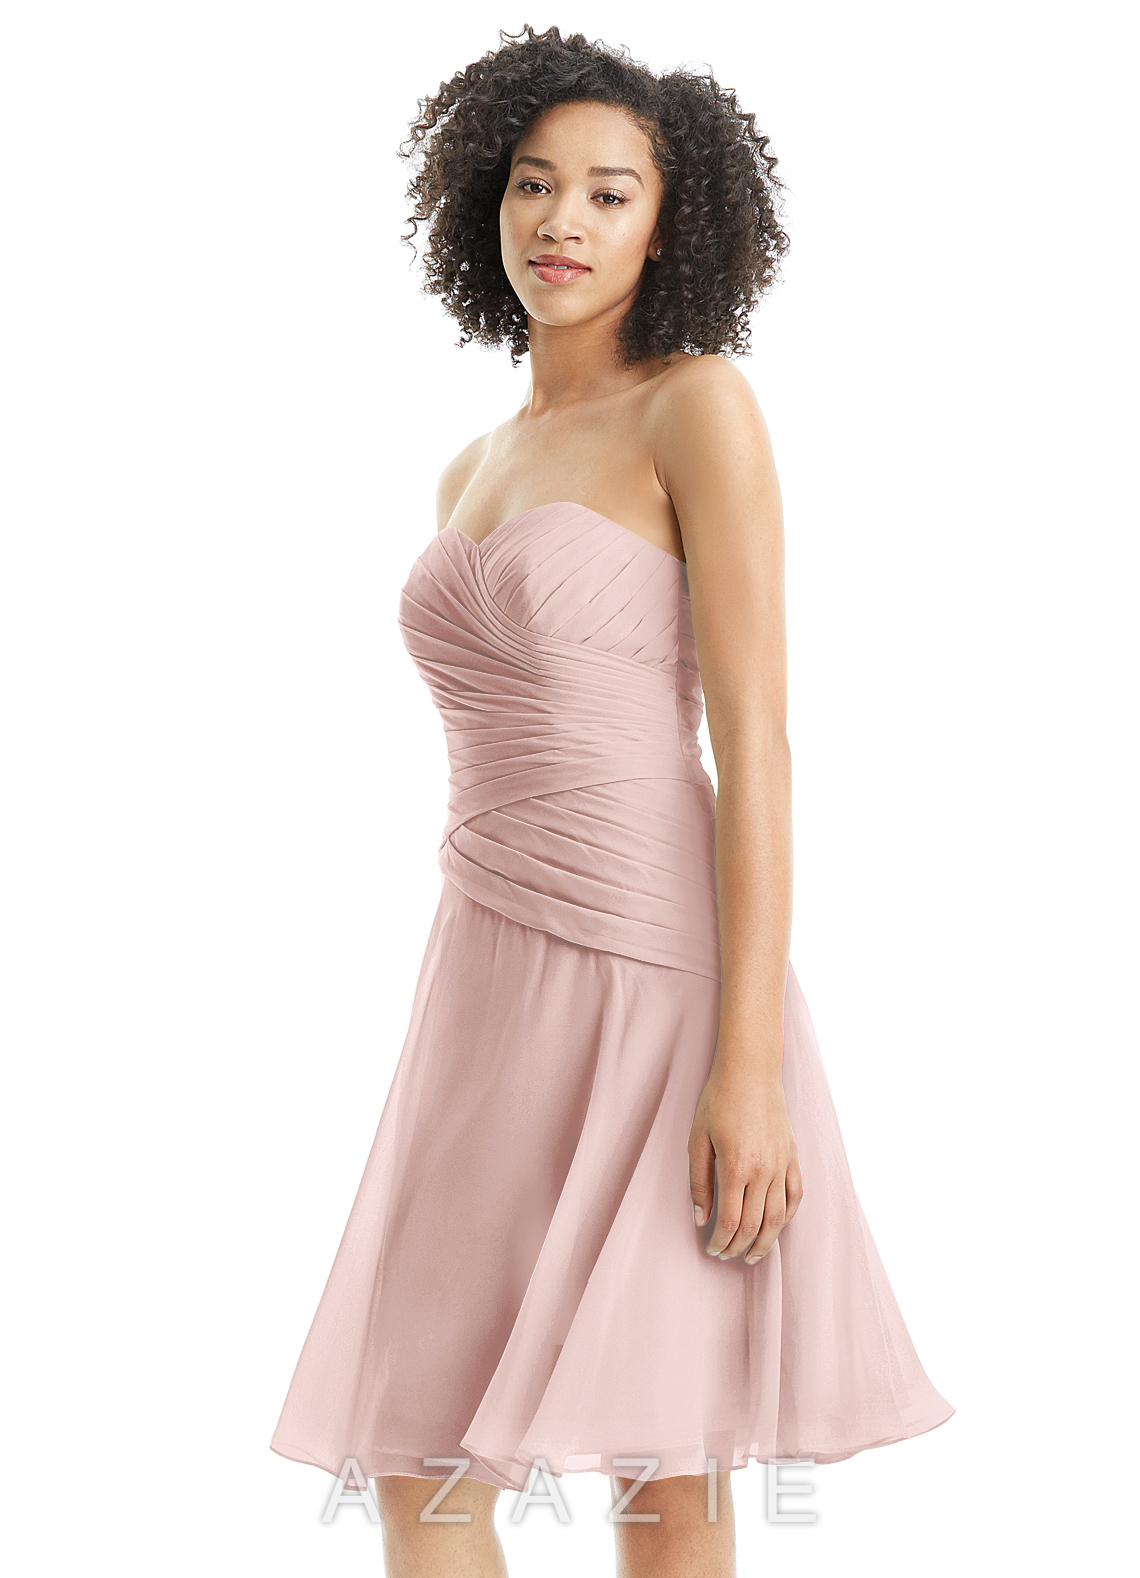 7e1a954ab99 Azazie Sofia Bridesmaid Dress